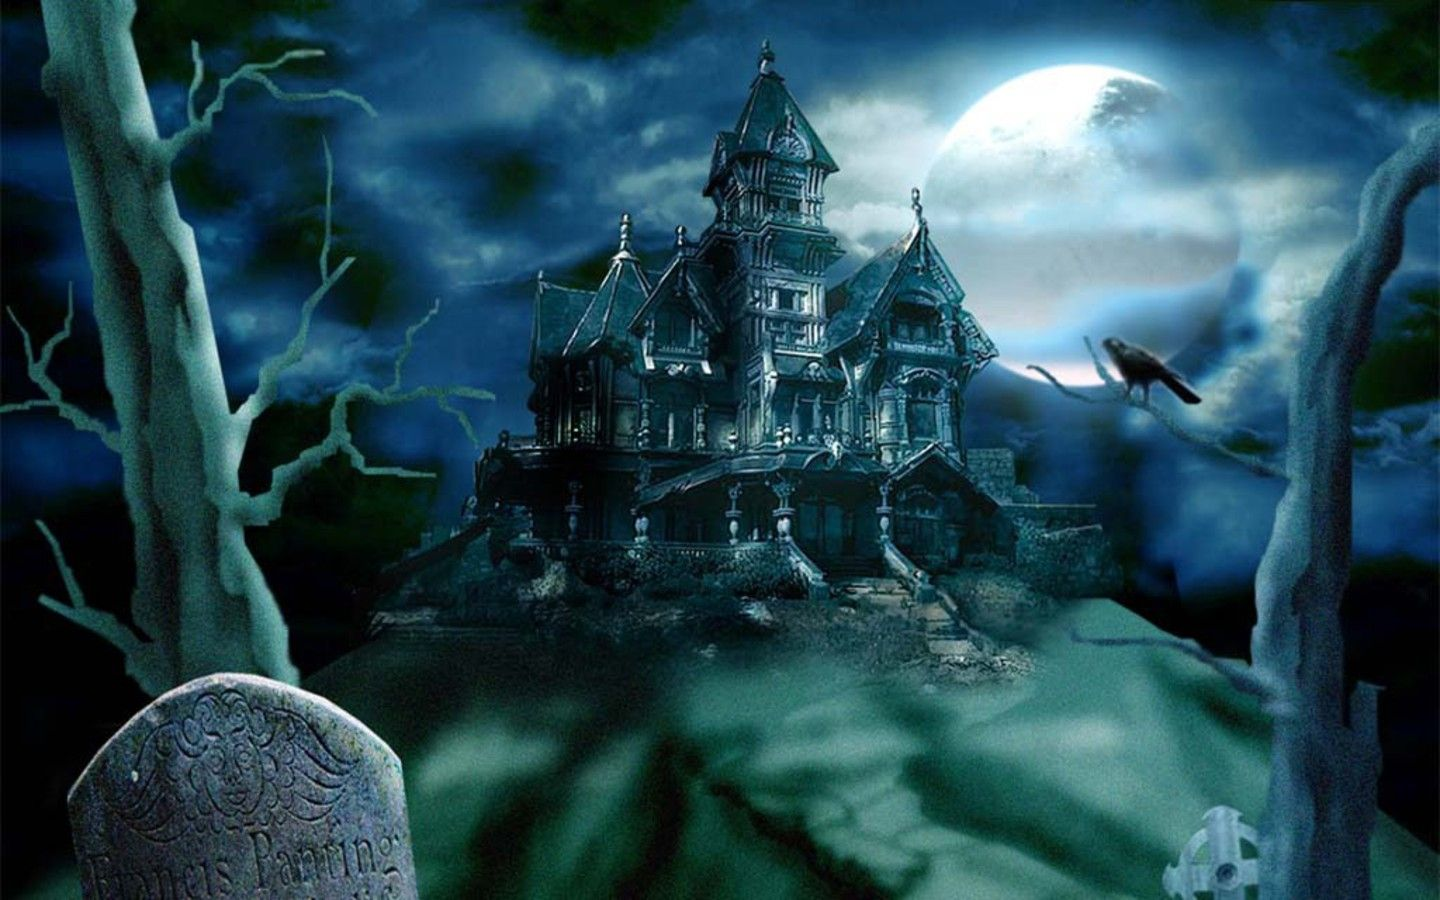 Dark Scary Bedroom At Night Wallpaper Creative Horror Ghost Houses Hq1440x900 Wallpapers Halloween Haunted Houses Scary Houses Scary Sounds